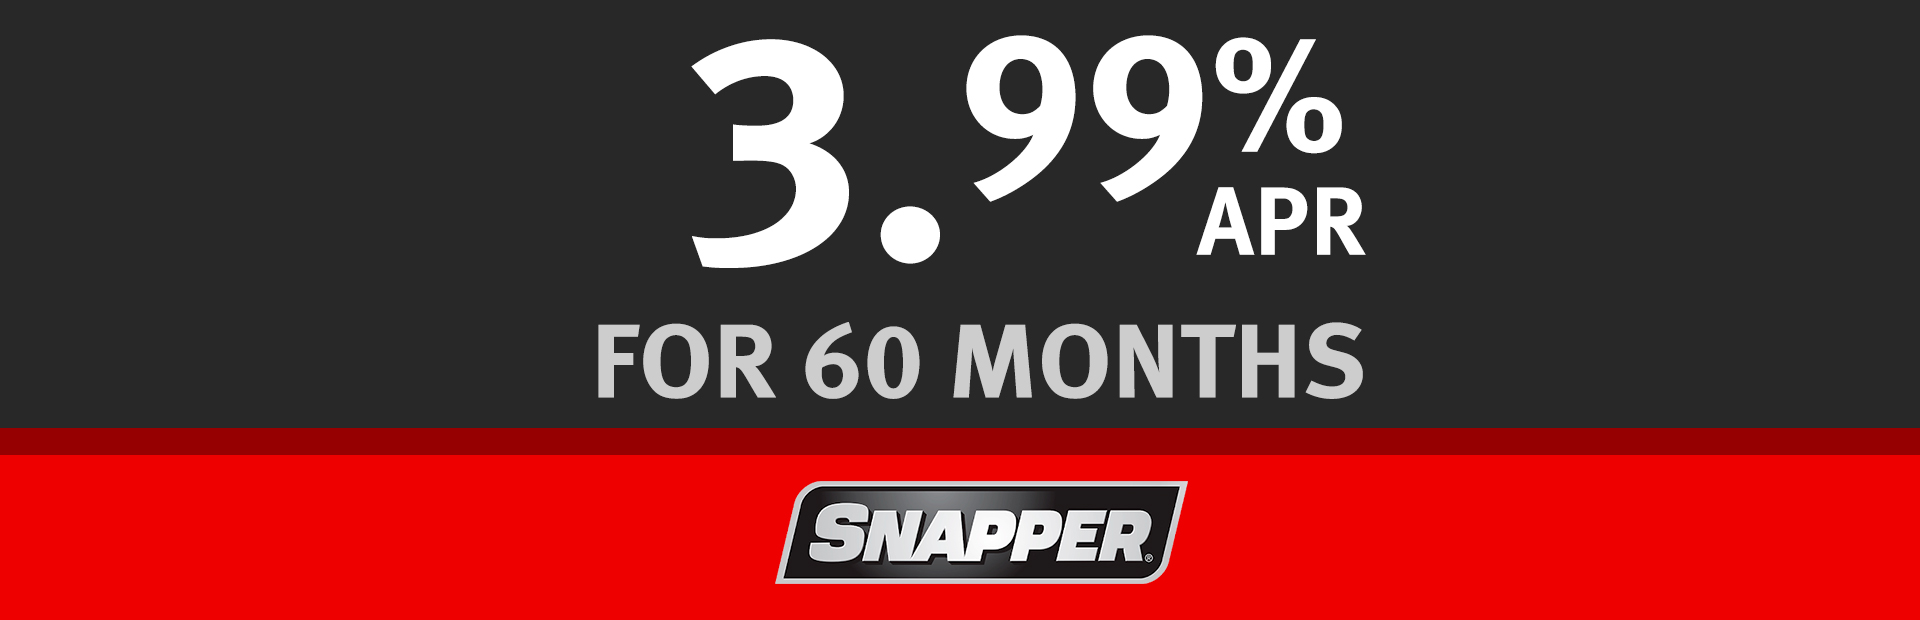 Snapper: 3.99% For 60 Months [4.26717% APR*]